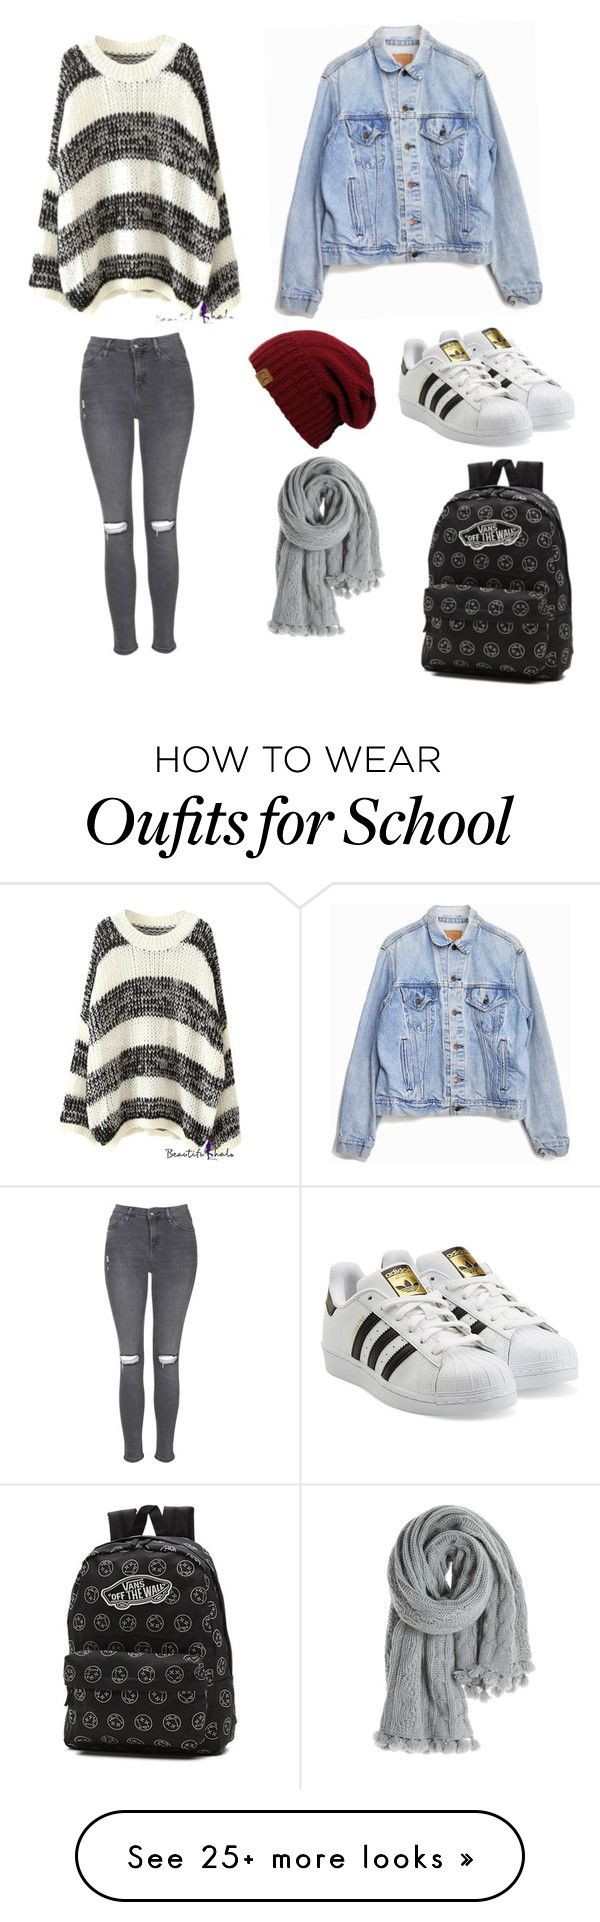 School style by hyukbingfzb on Polyvore featuring Levis, Topshop, adidas Originals, Vans and Calypso St. Barth